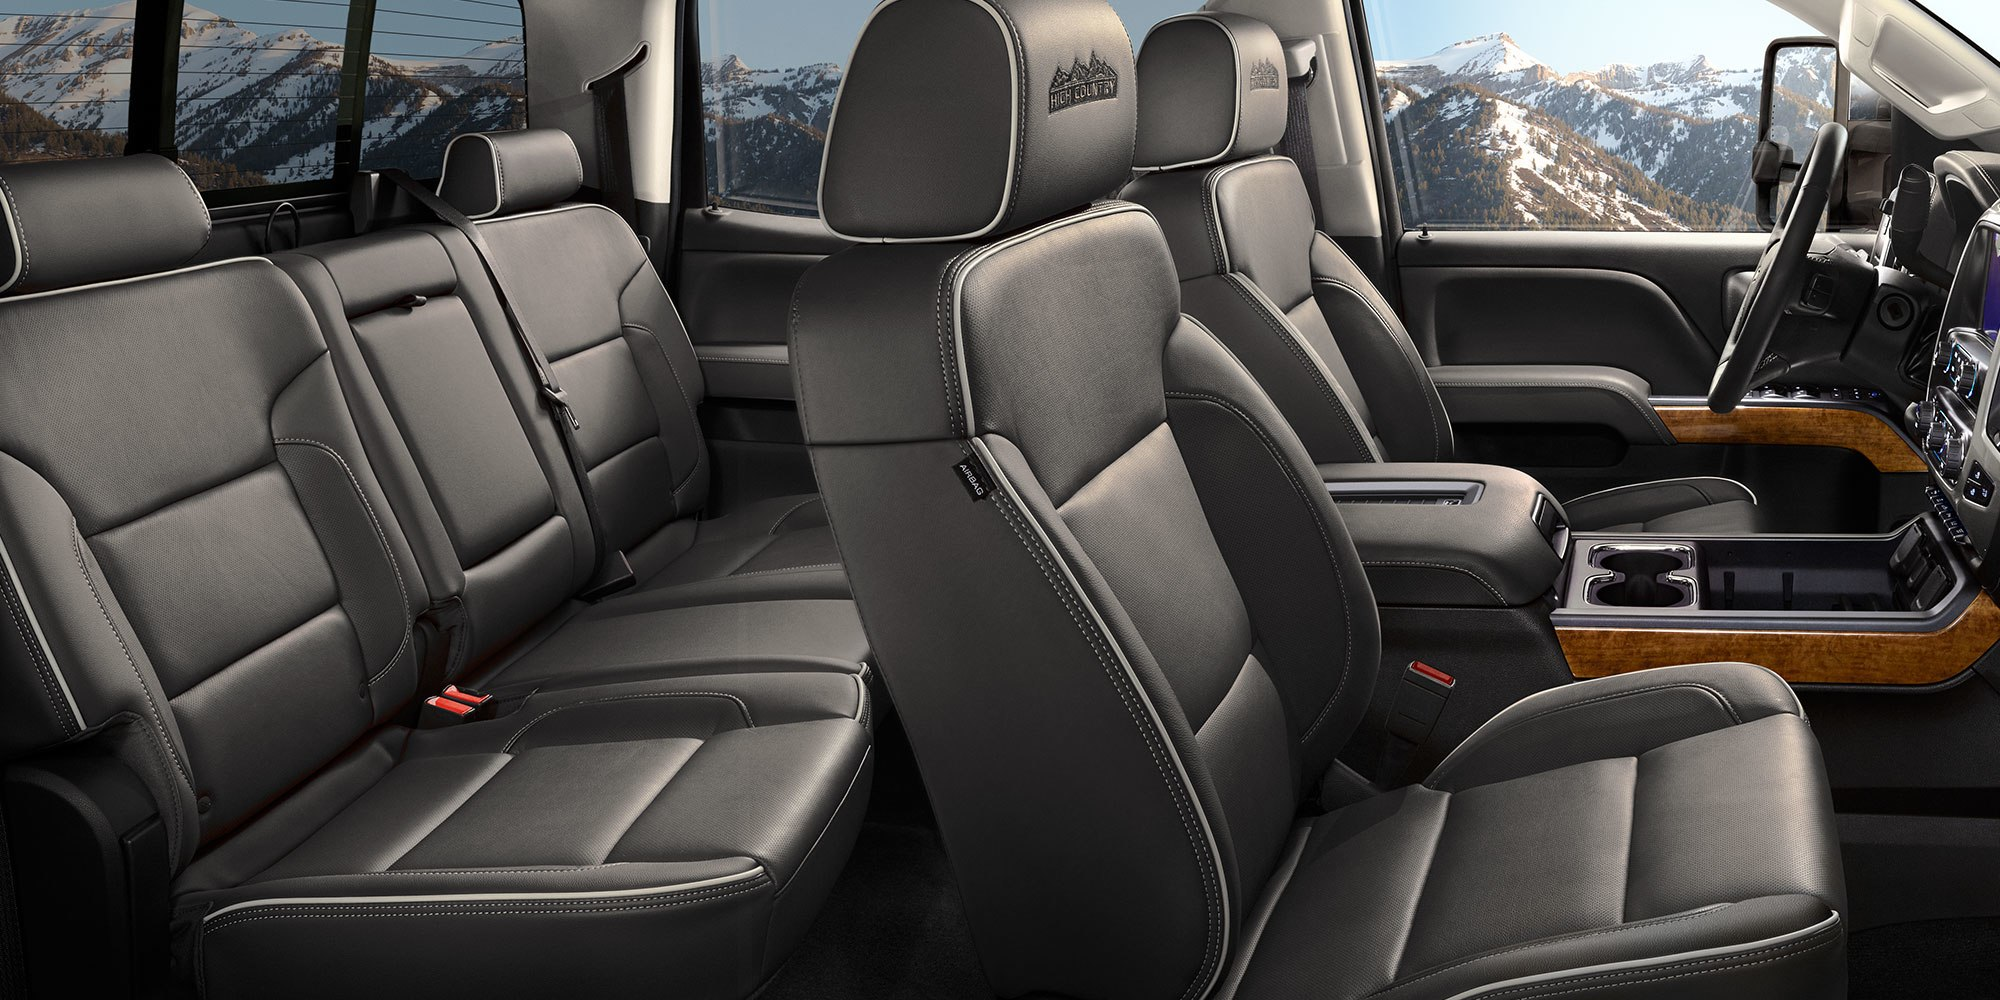 Luxurious Seating Options in the Silverado 3500HD